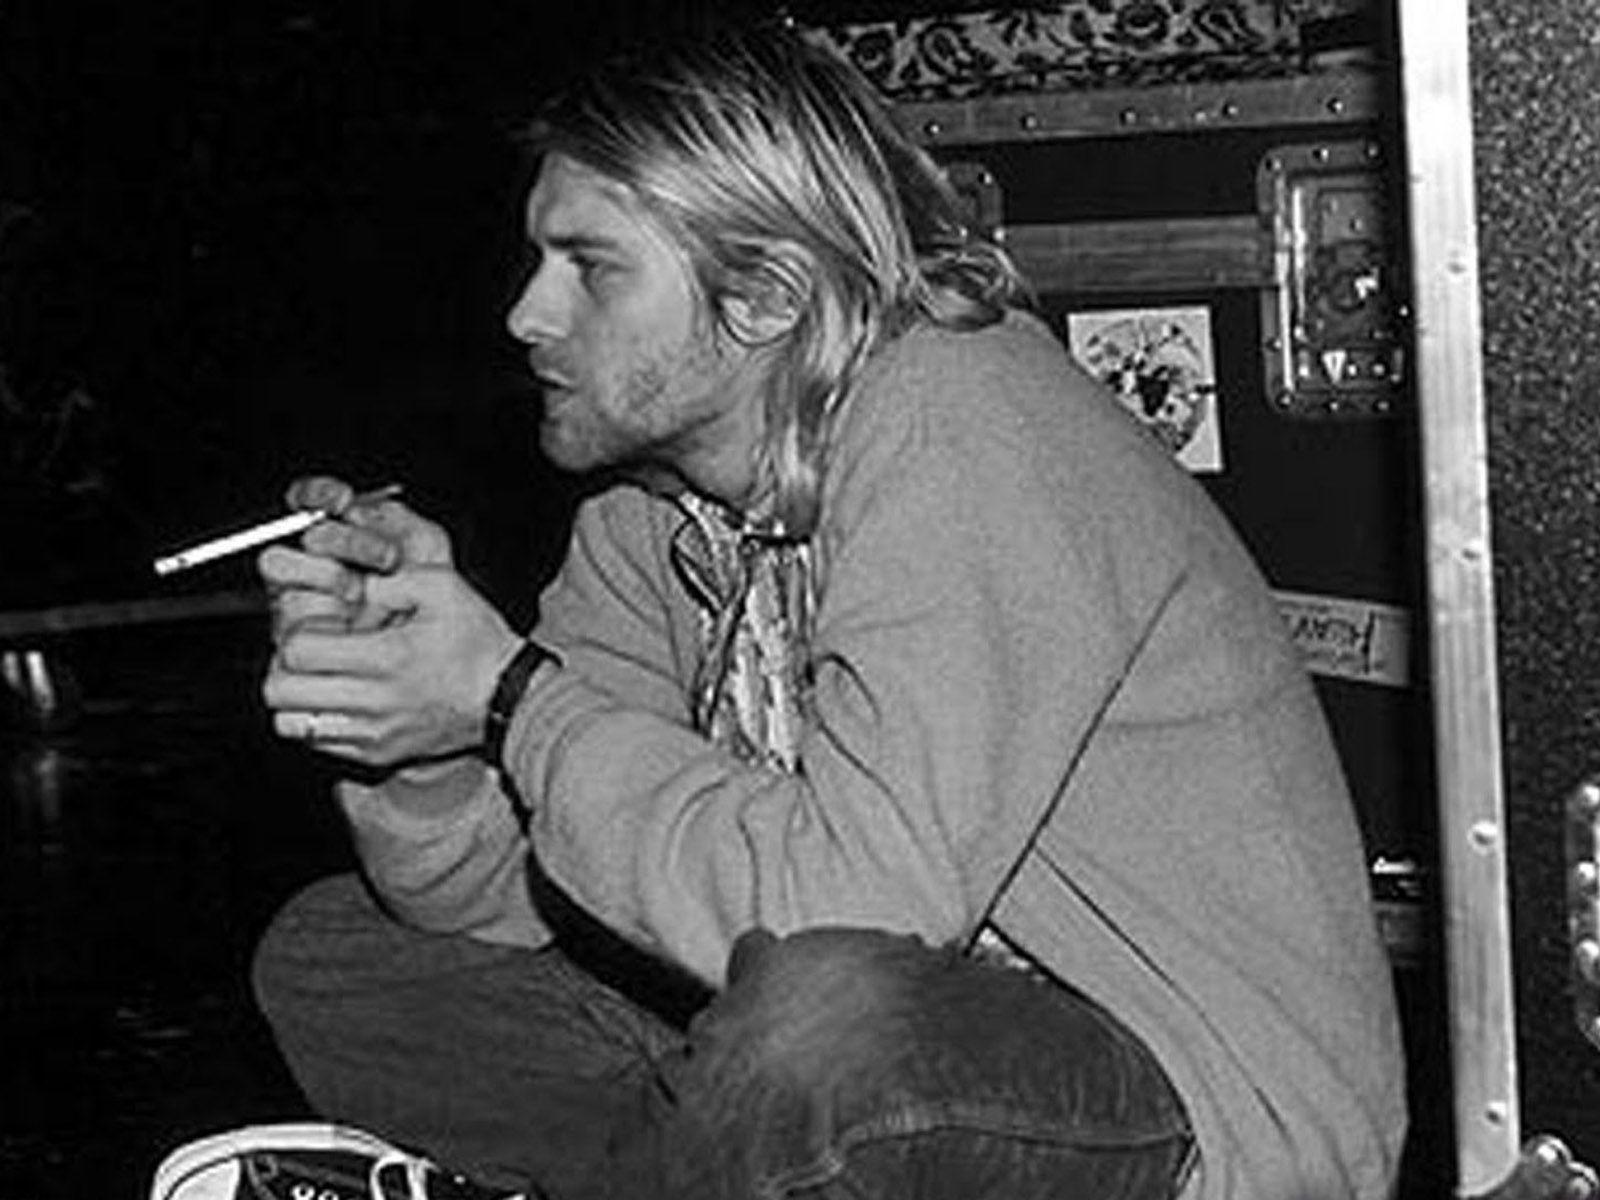 Cobain Image Free Download by Lise Esquivel – download free